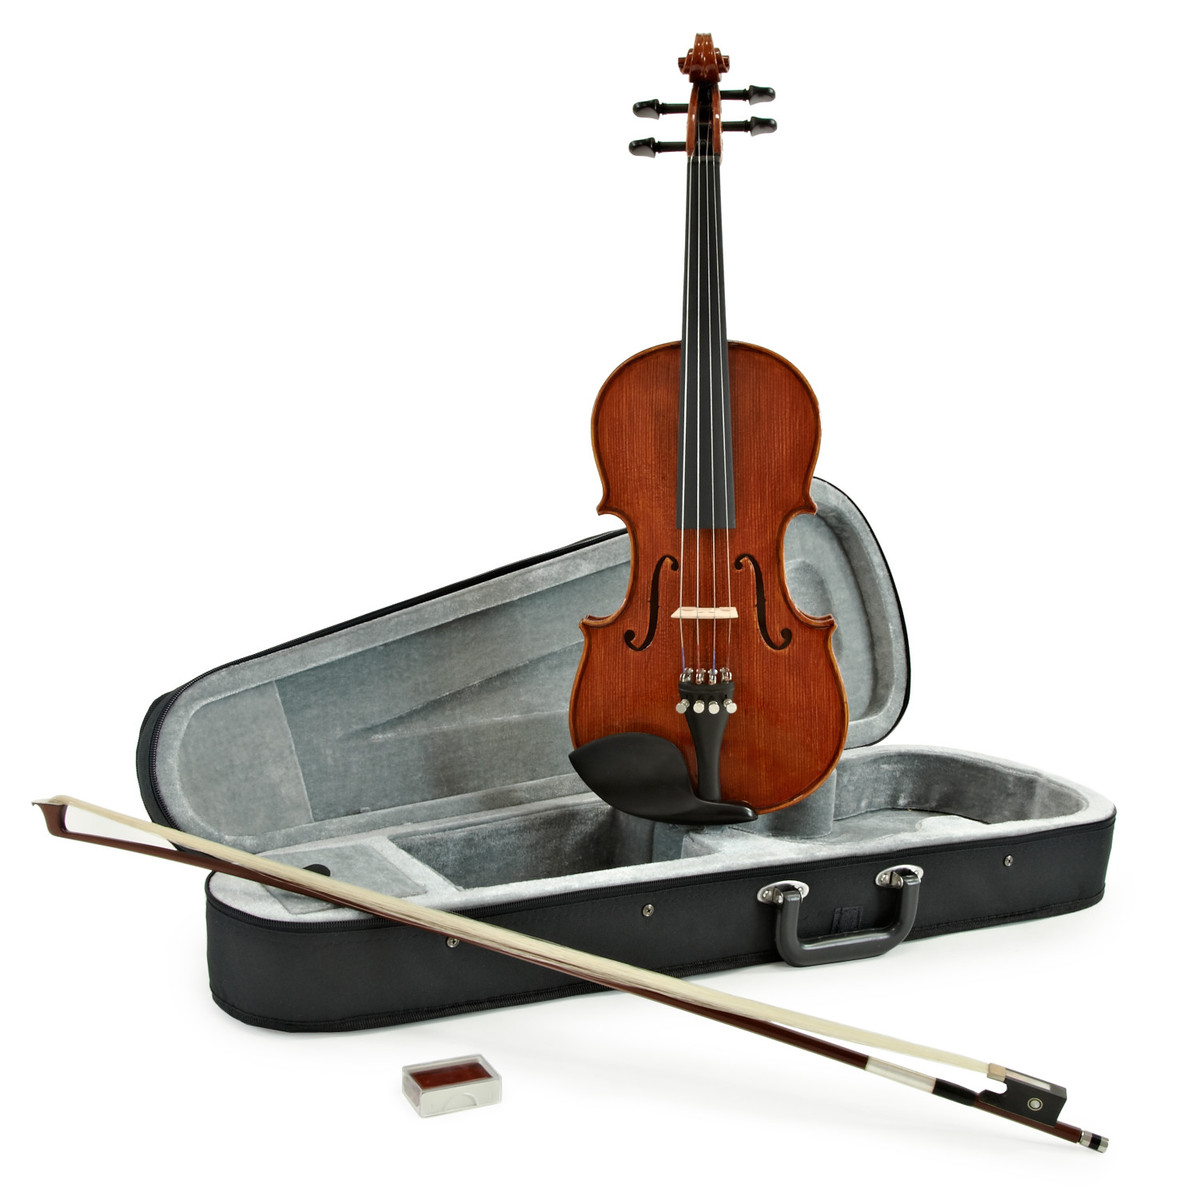 Image of Deluxe 1/2 Size Violin by Gear4music